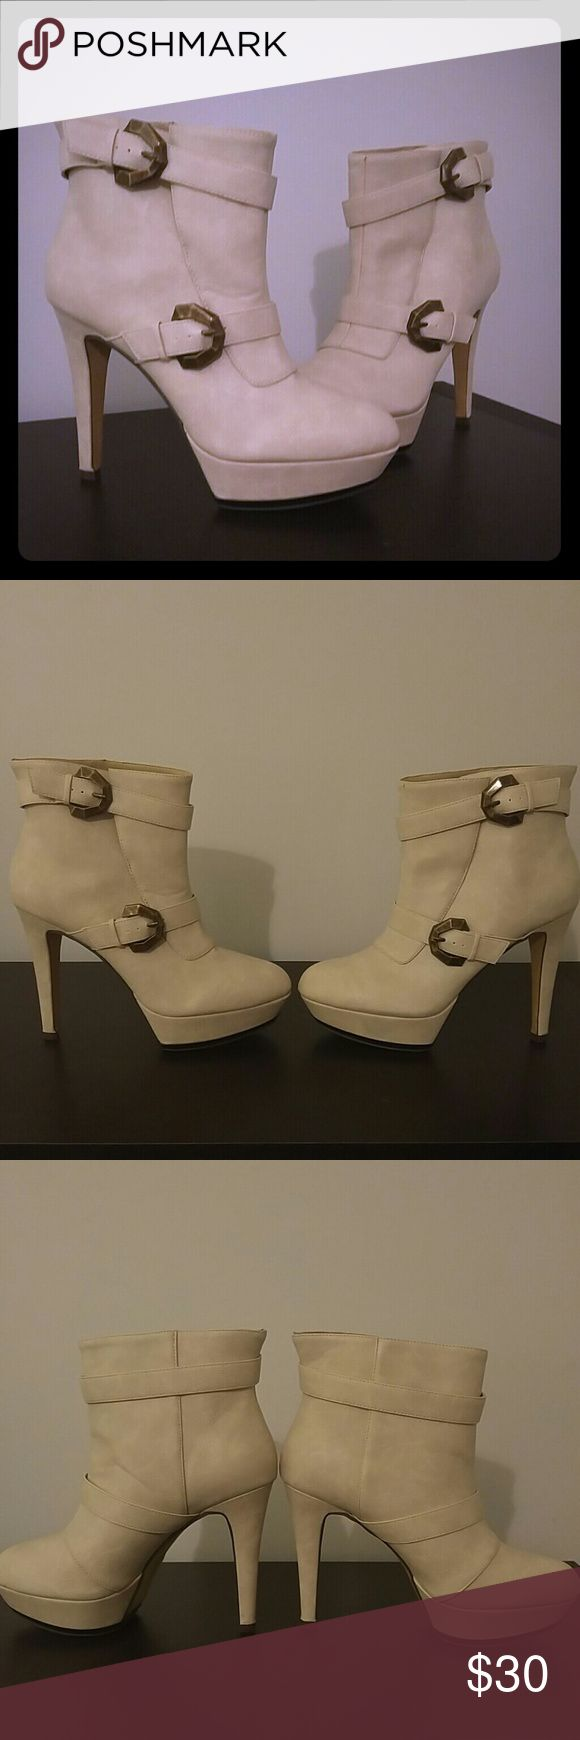 Cream High Heel Booties with Buckles, size 7.5 Cream High Heel Booties with Buckles.  5 inch heel, 1.5 inch platform. Michael Antonio Shoes Ankle Boots & Booties